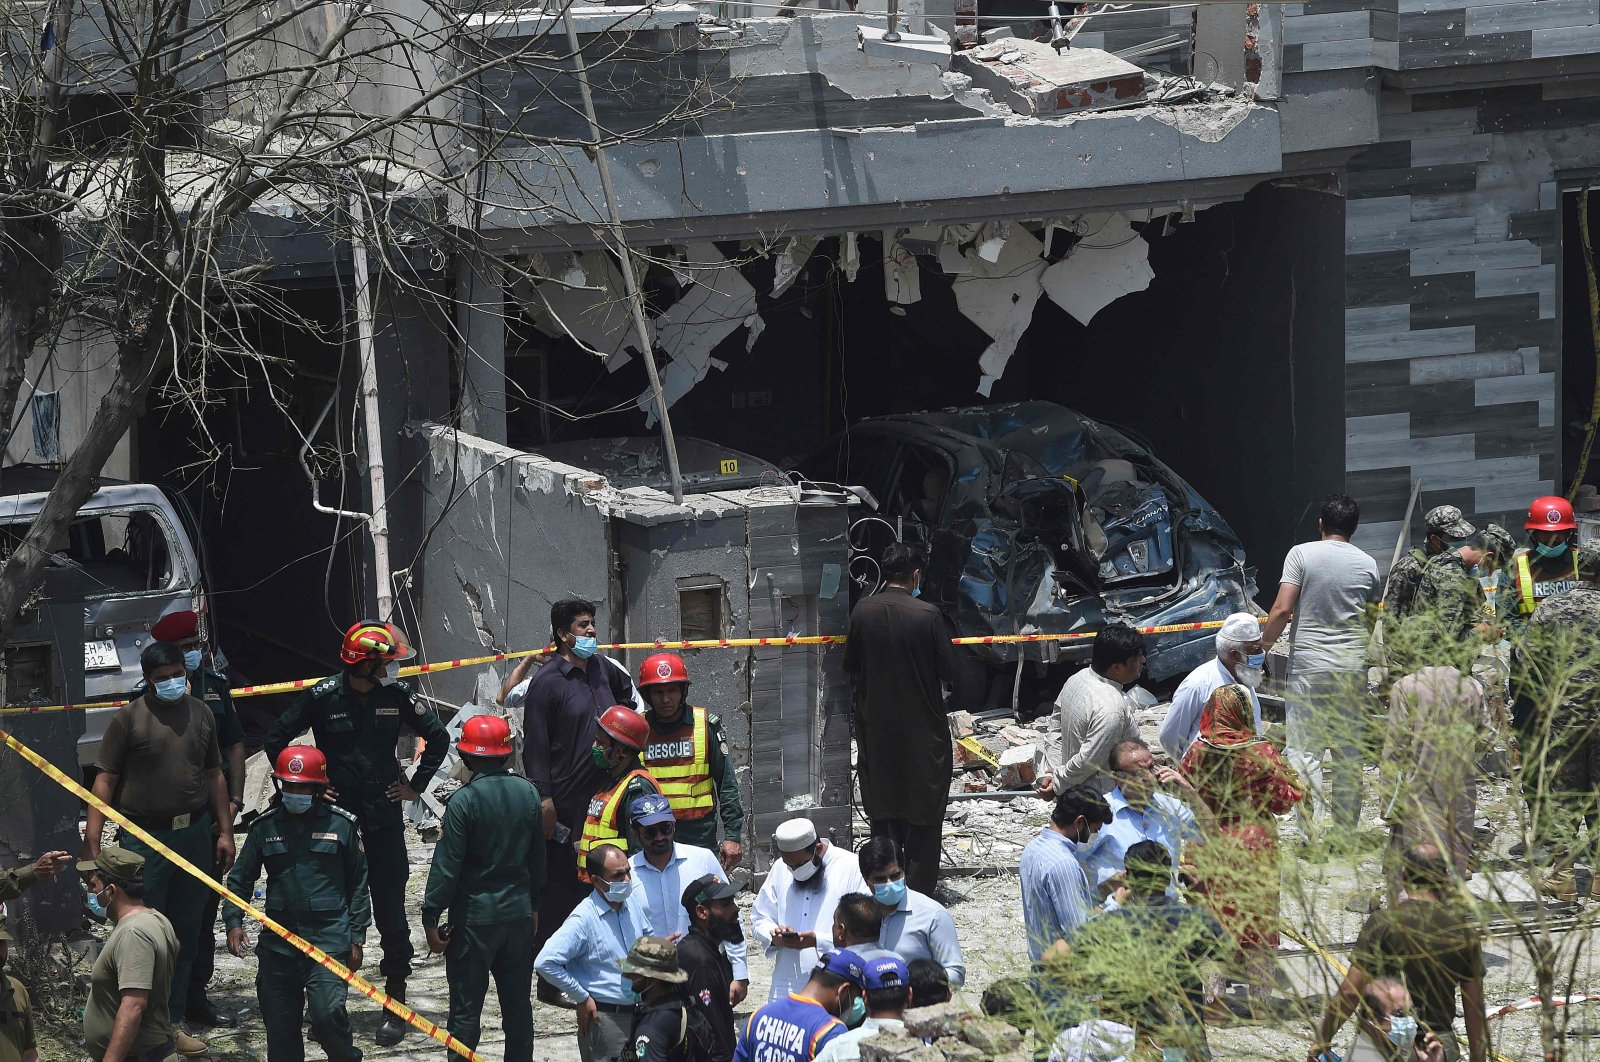 Security officials inspect the site of an explosion that killed at least three people and wounded several others in the city of Lahore, eastern Pakistan, June 23, 2021. (AFP Photo)